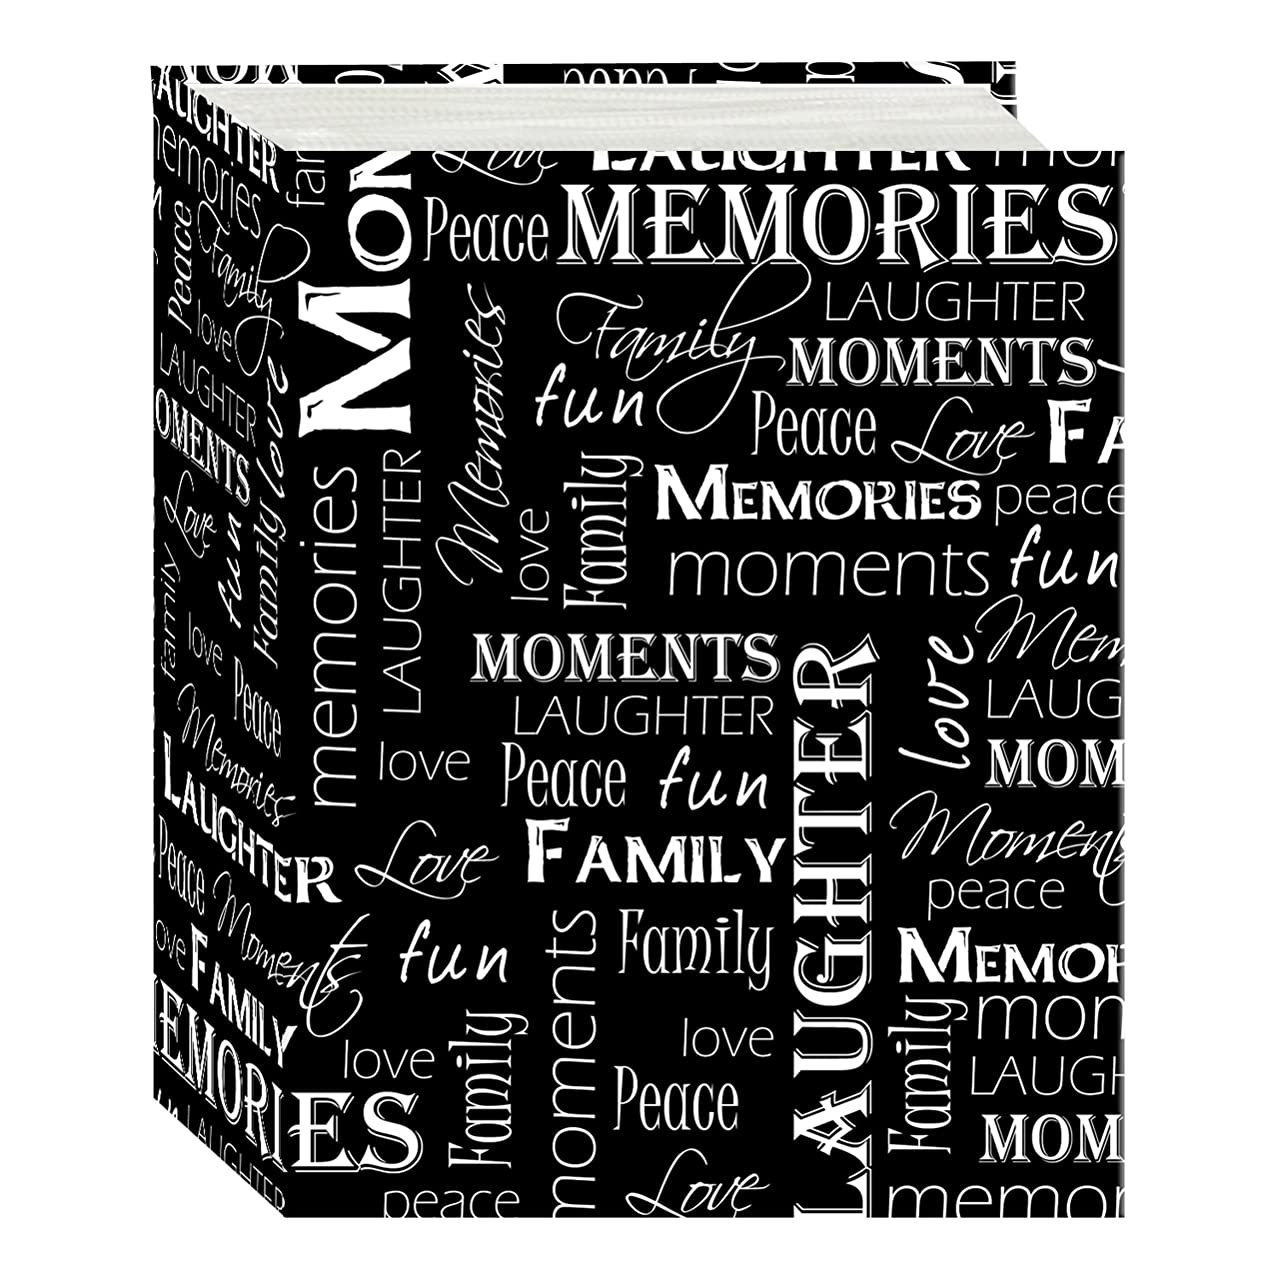 Pioneer Photo Albums A4-100 100 Pocket Mini-Max Album Hold 4x6 Photos, Black & White Words, 4